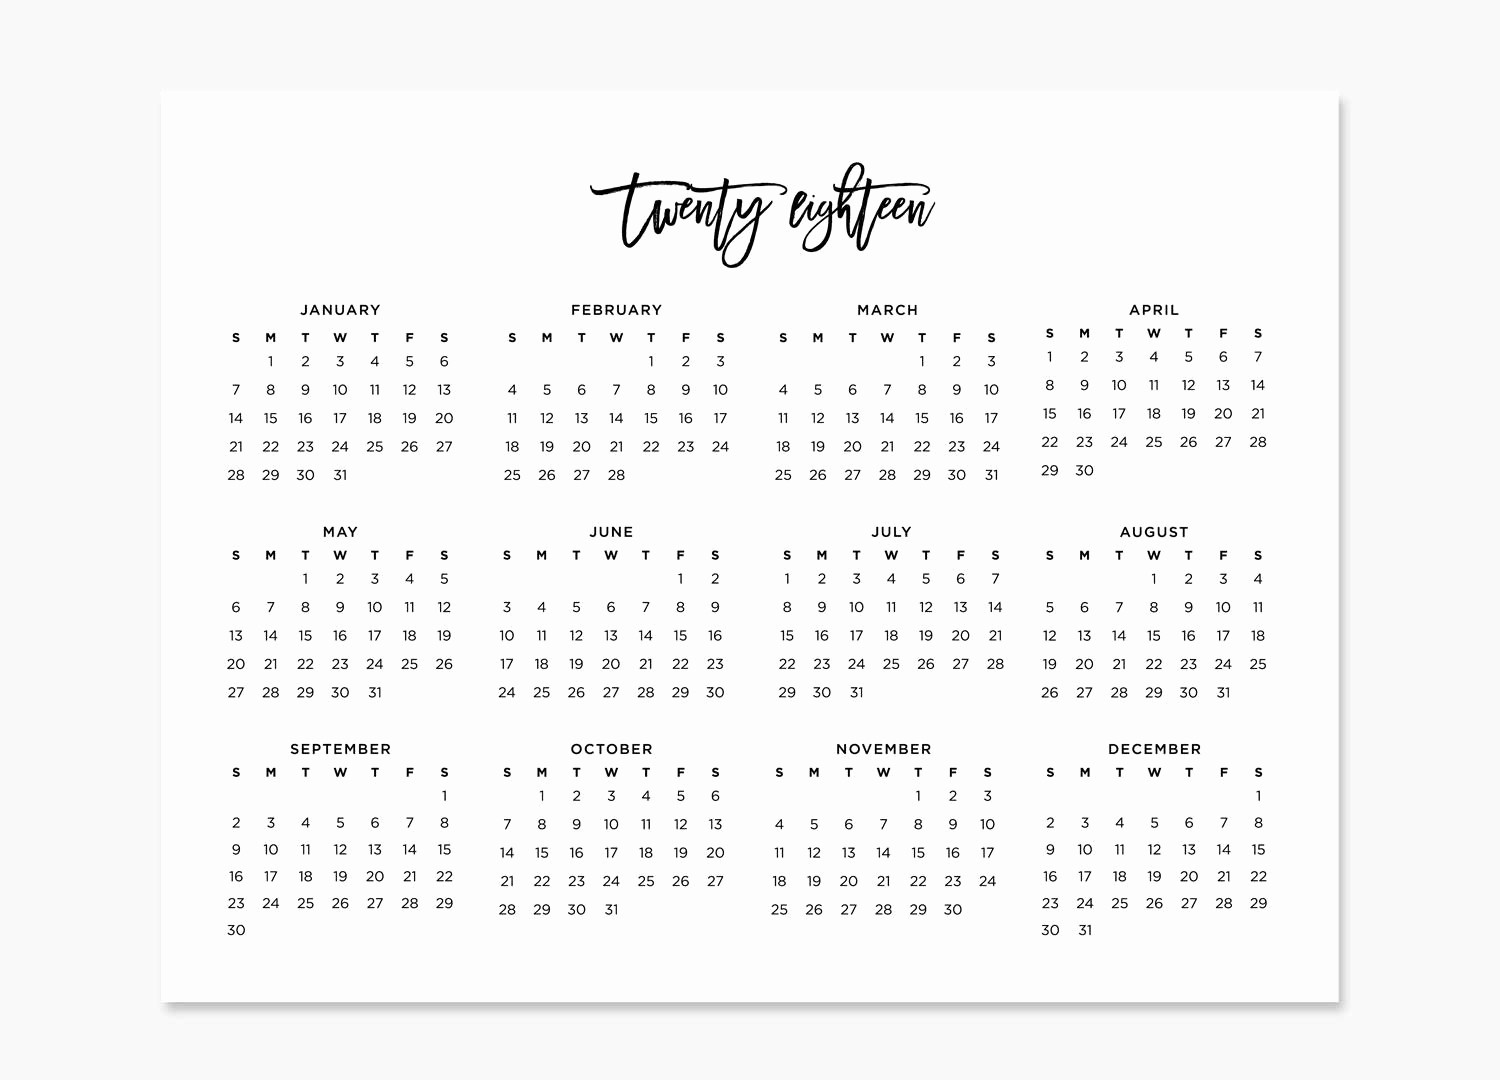 Annual Calendar at A Glance Luxury Yearly Calendar at A Glance 2018 Printable